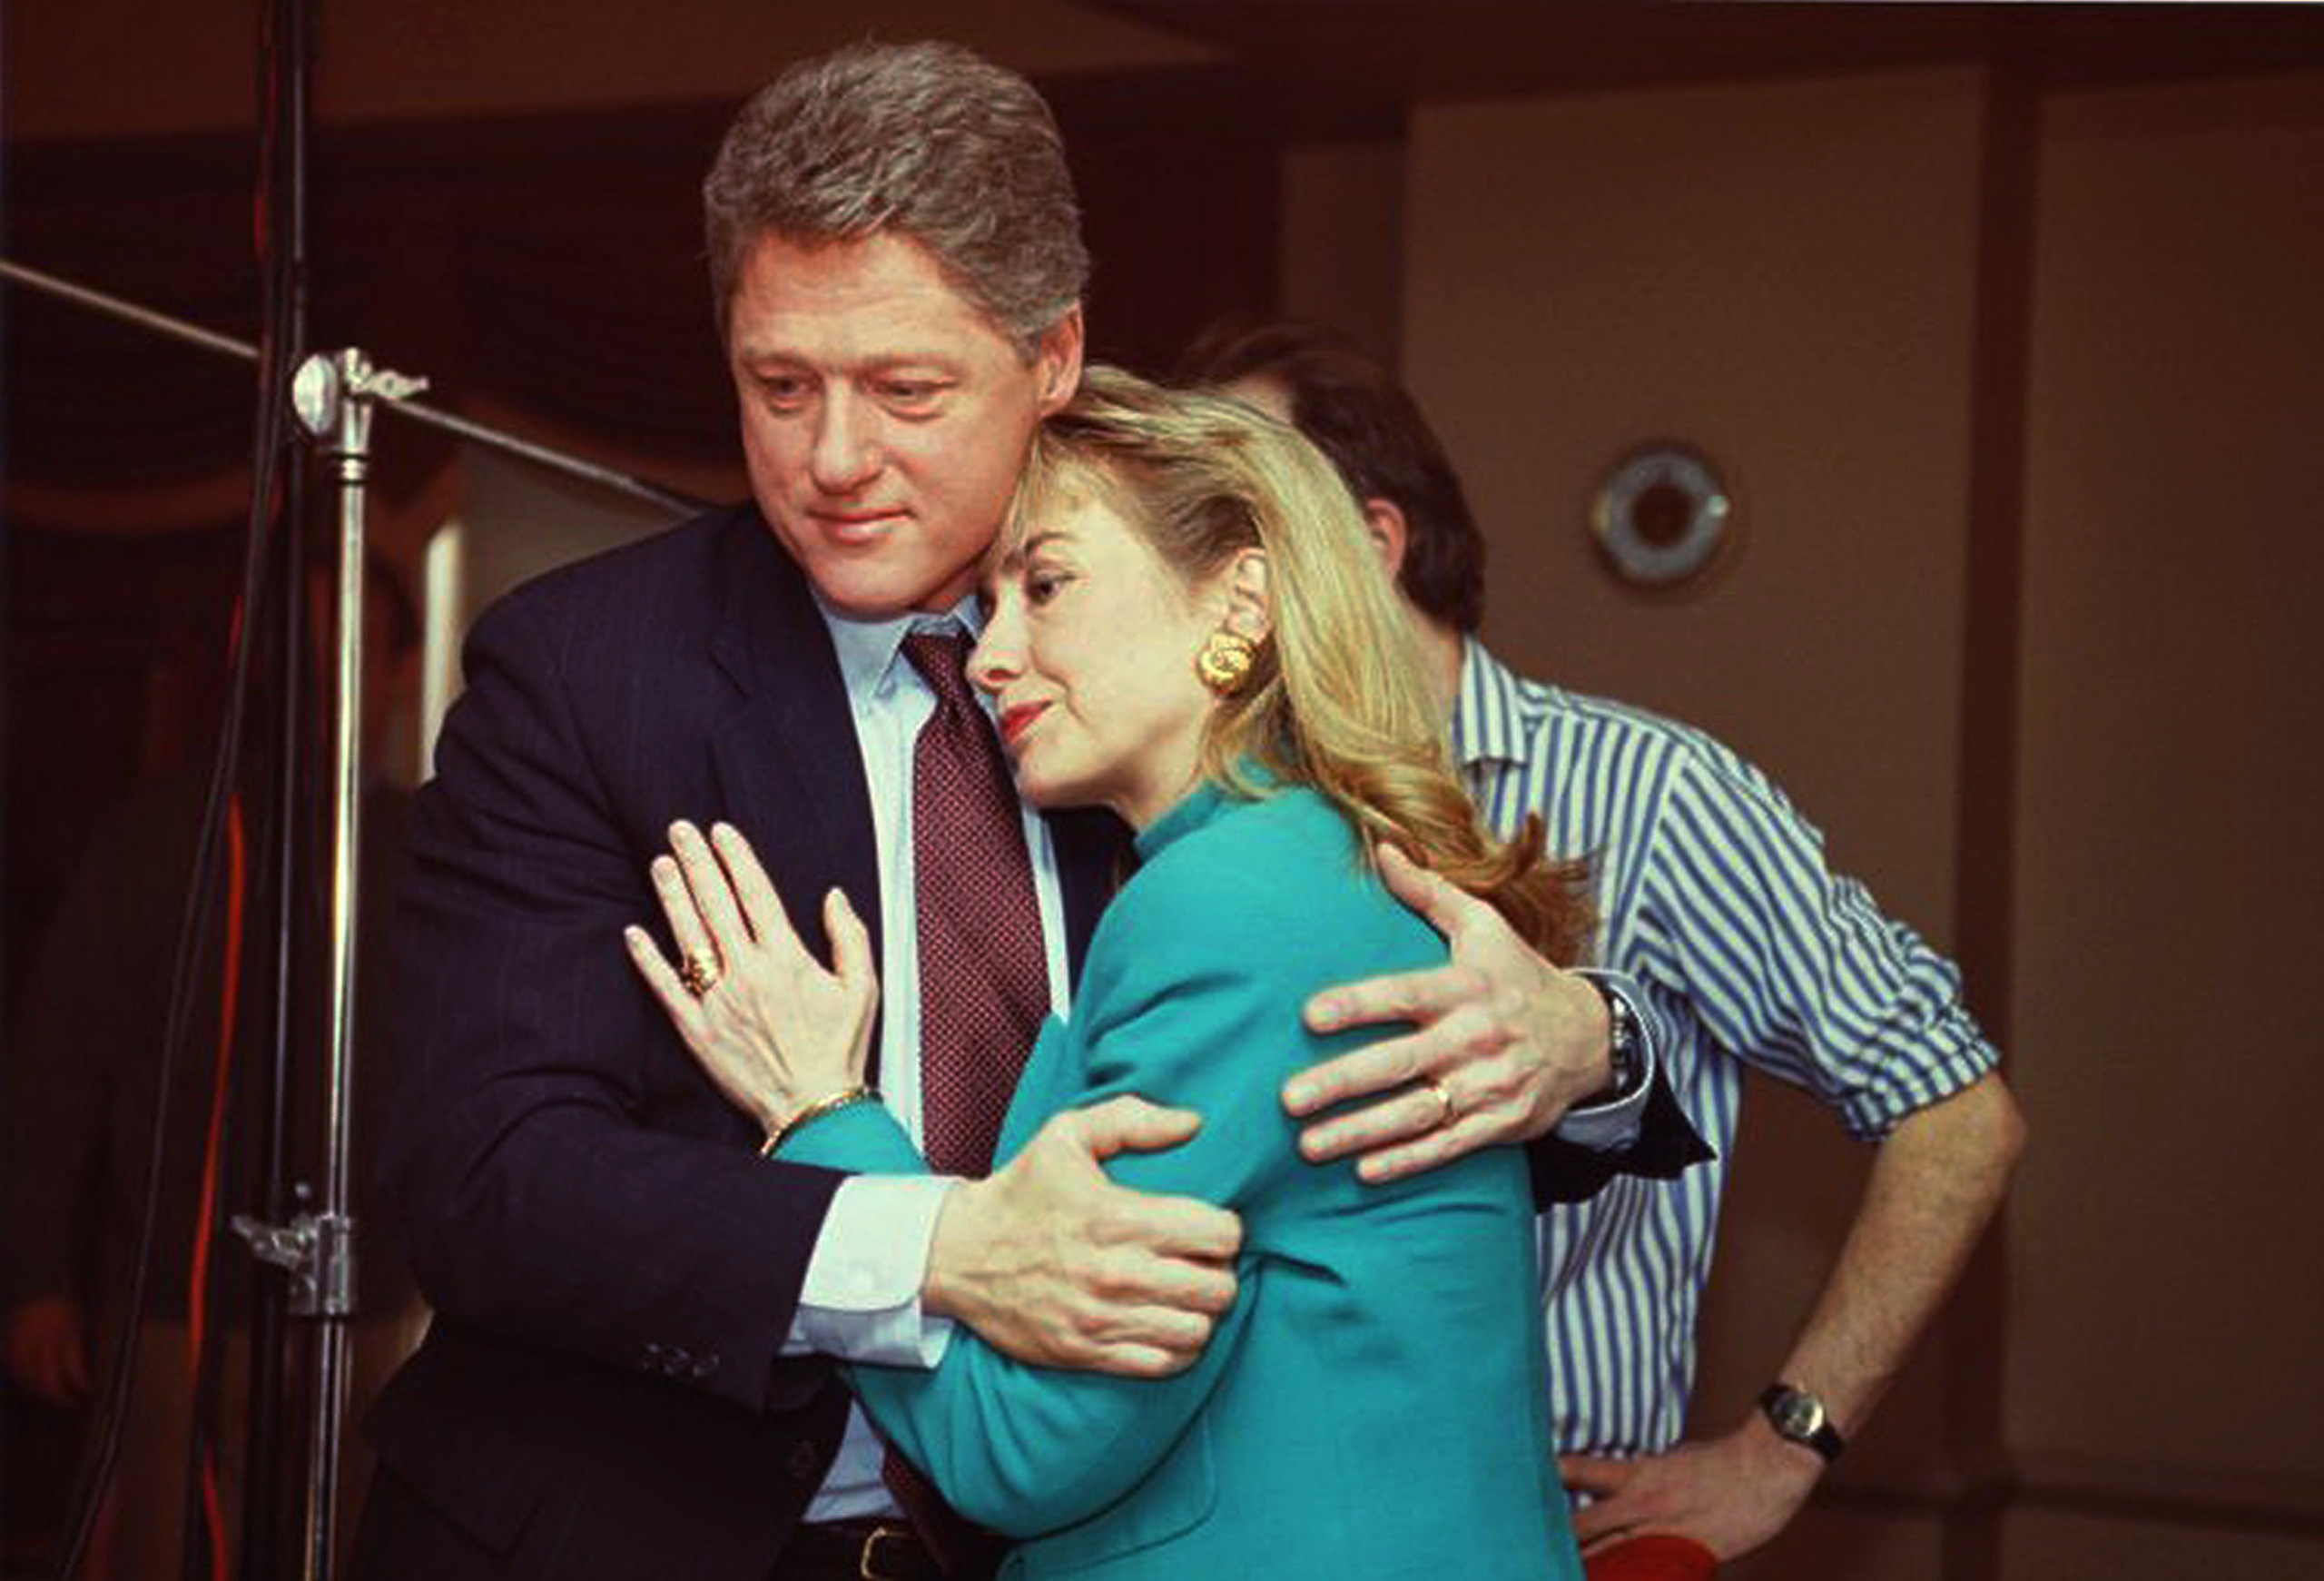 The past conduct of Bill Clinton (above, in 1992 during the 60 Minutes shoot, comforting Hillary after a stage light fell nearby) may haunt his wife's campaign